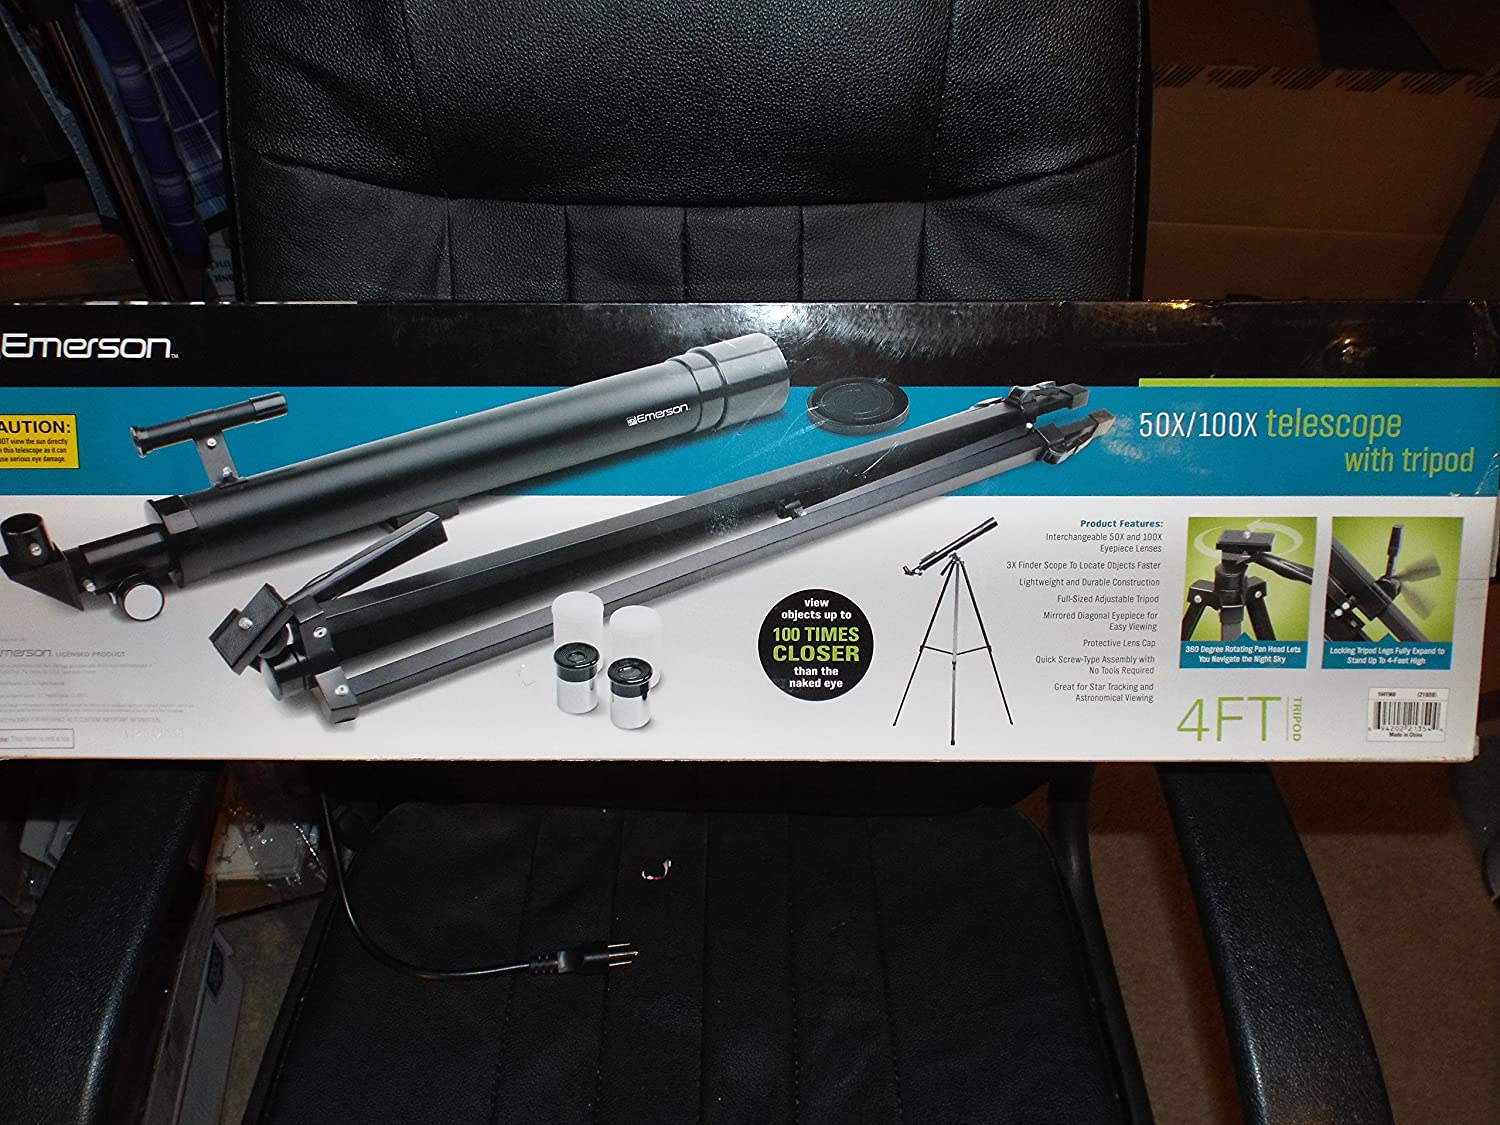 3663694a755d9 50x / 100x Refractor Telescope with Adjustable Tripod - Black